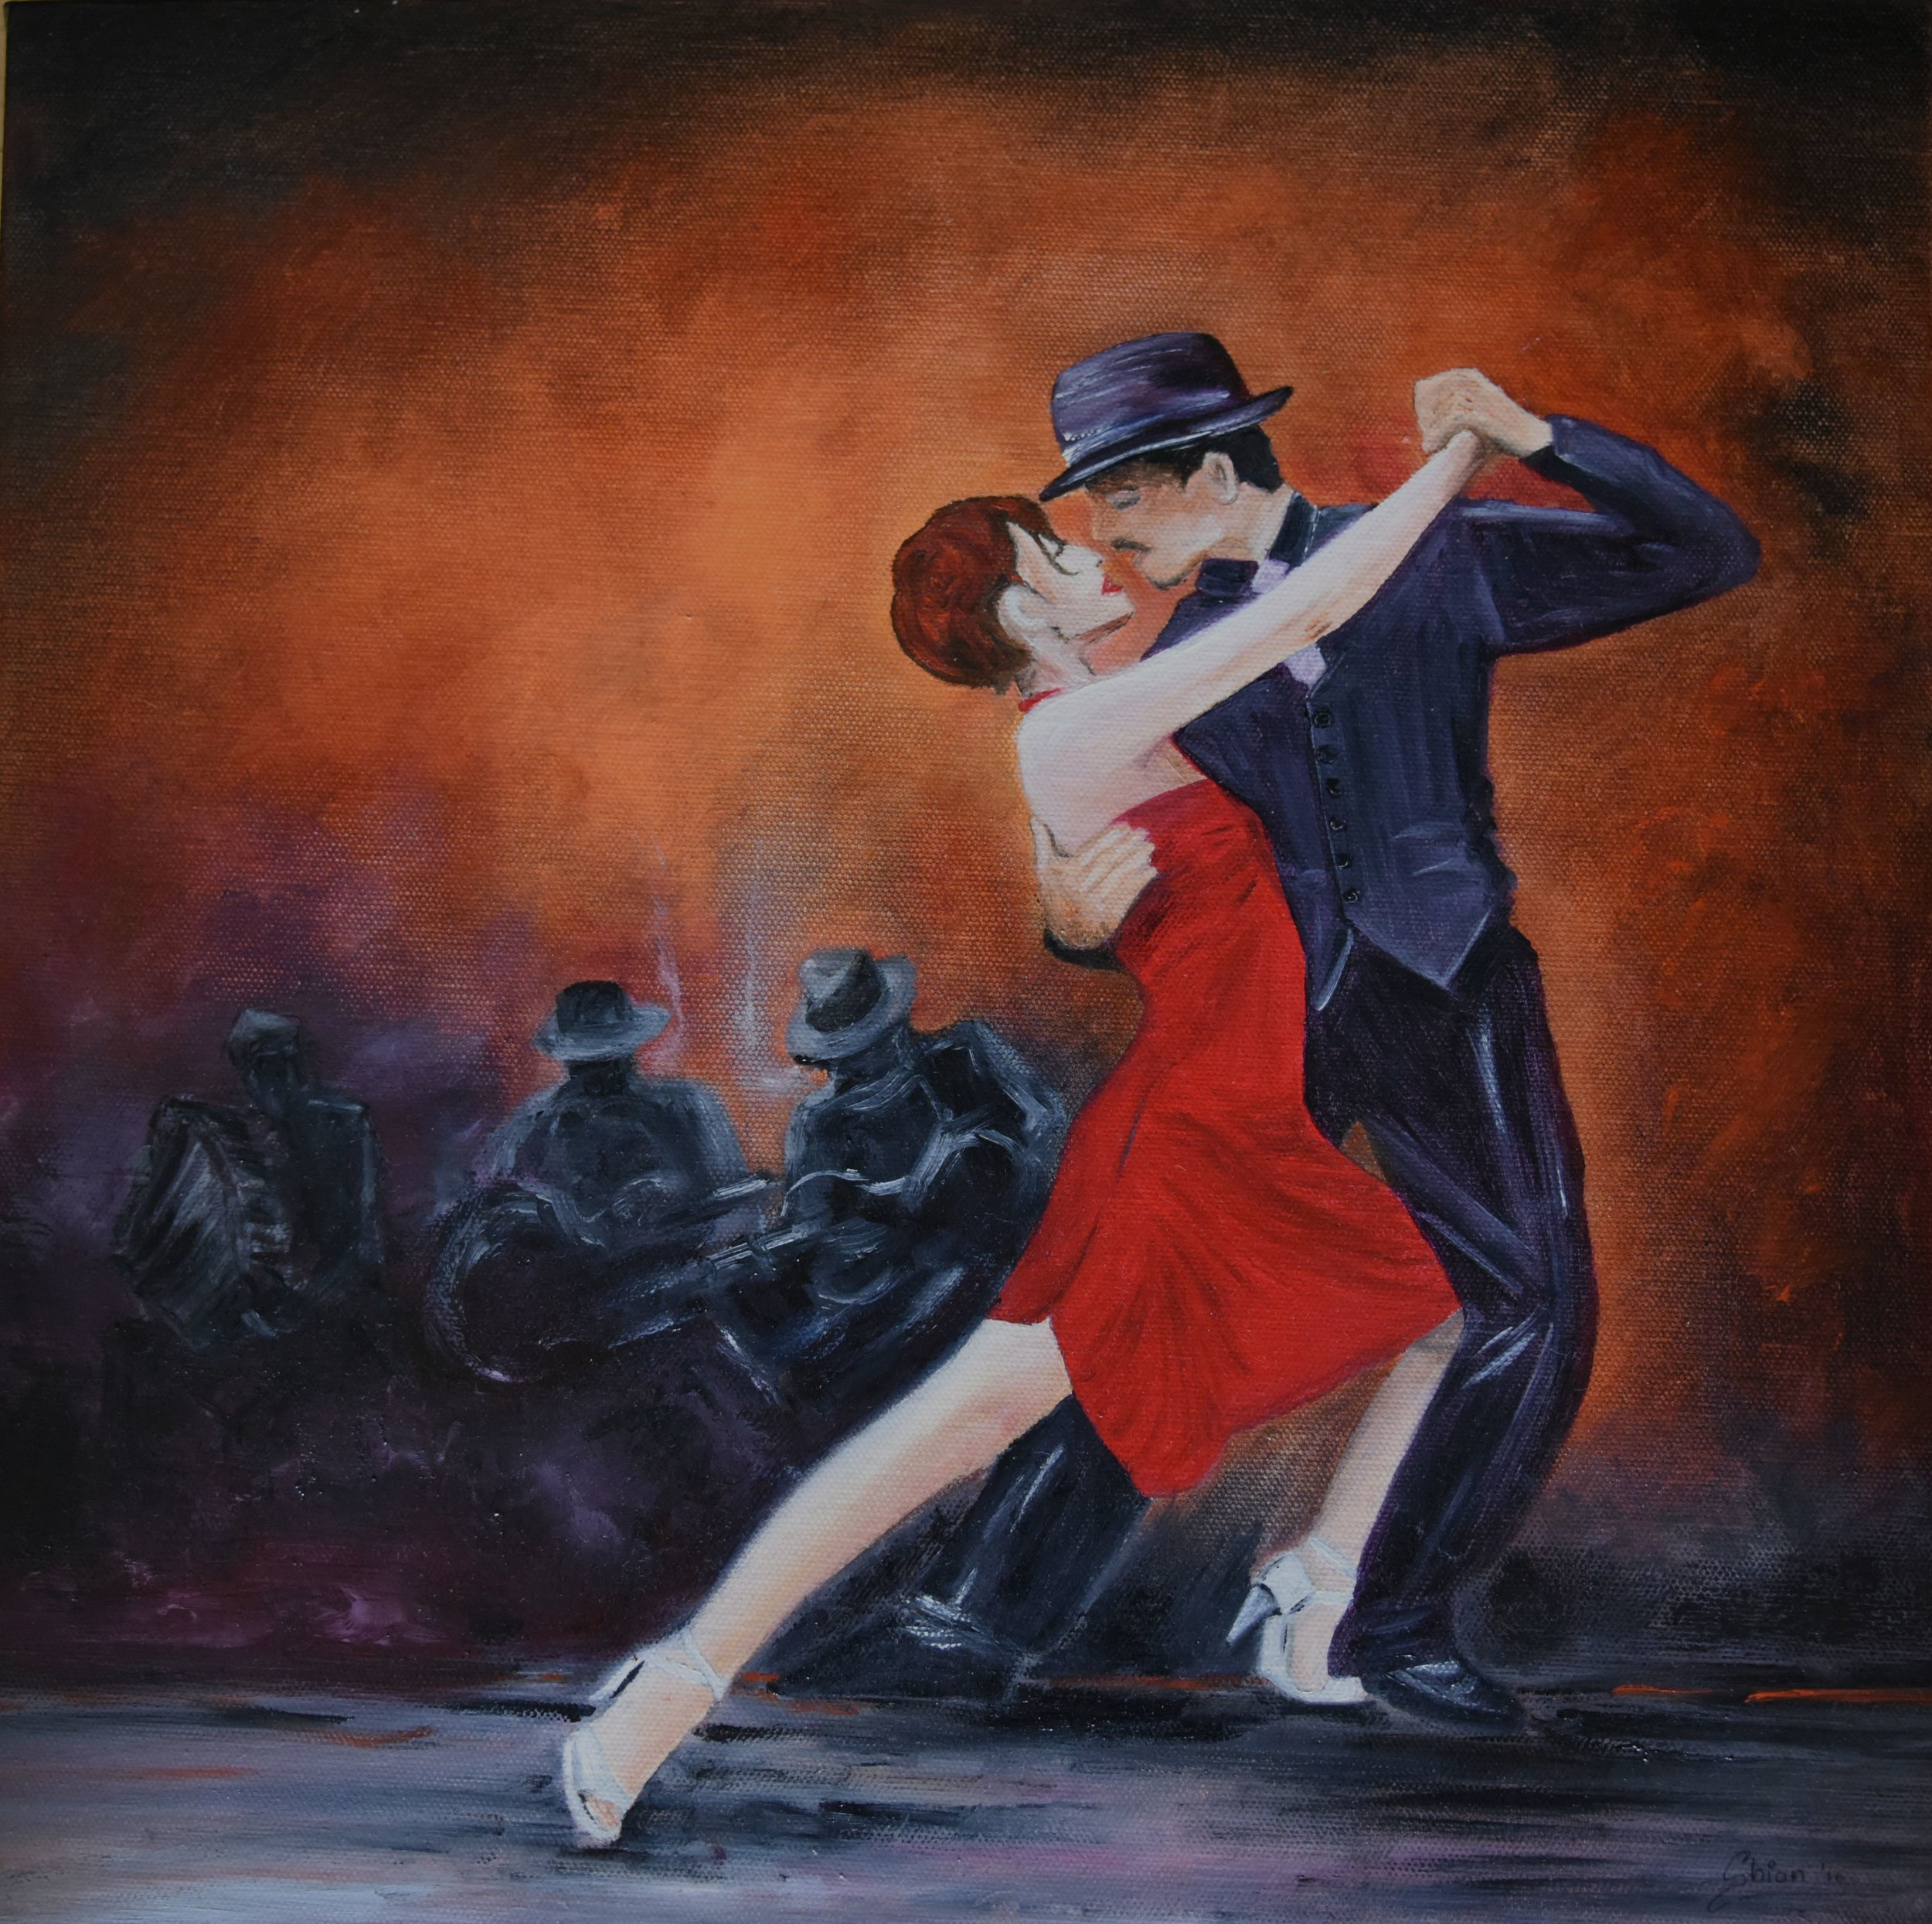 S.Busetto-TANGO-Oil_on_Canvas-410mmx410mm.jpg